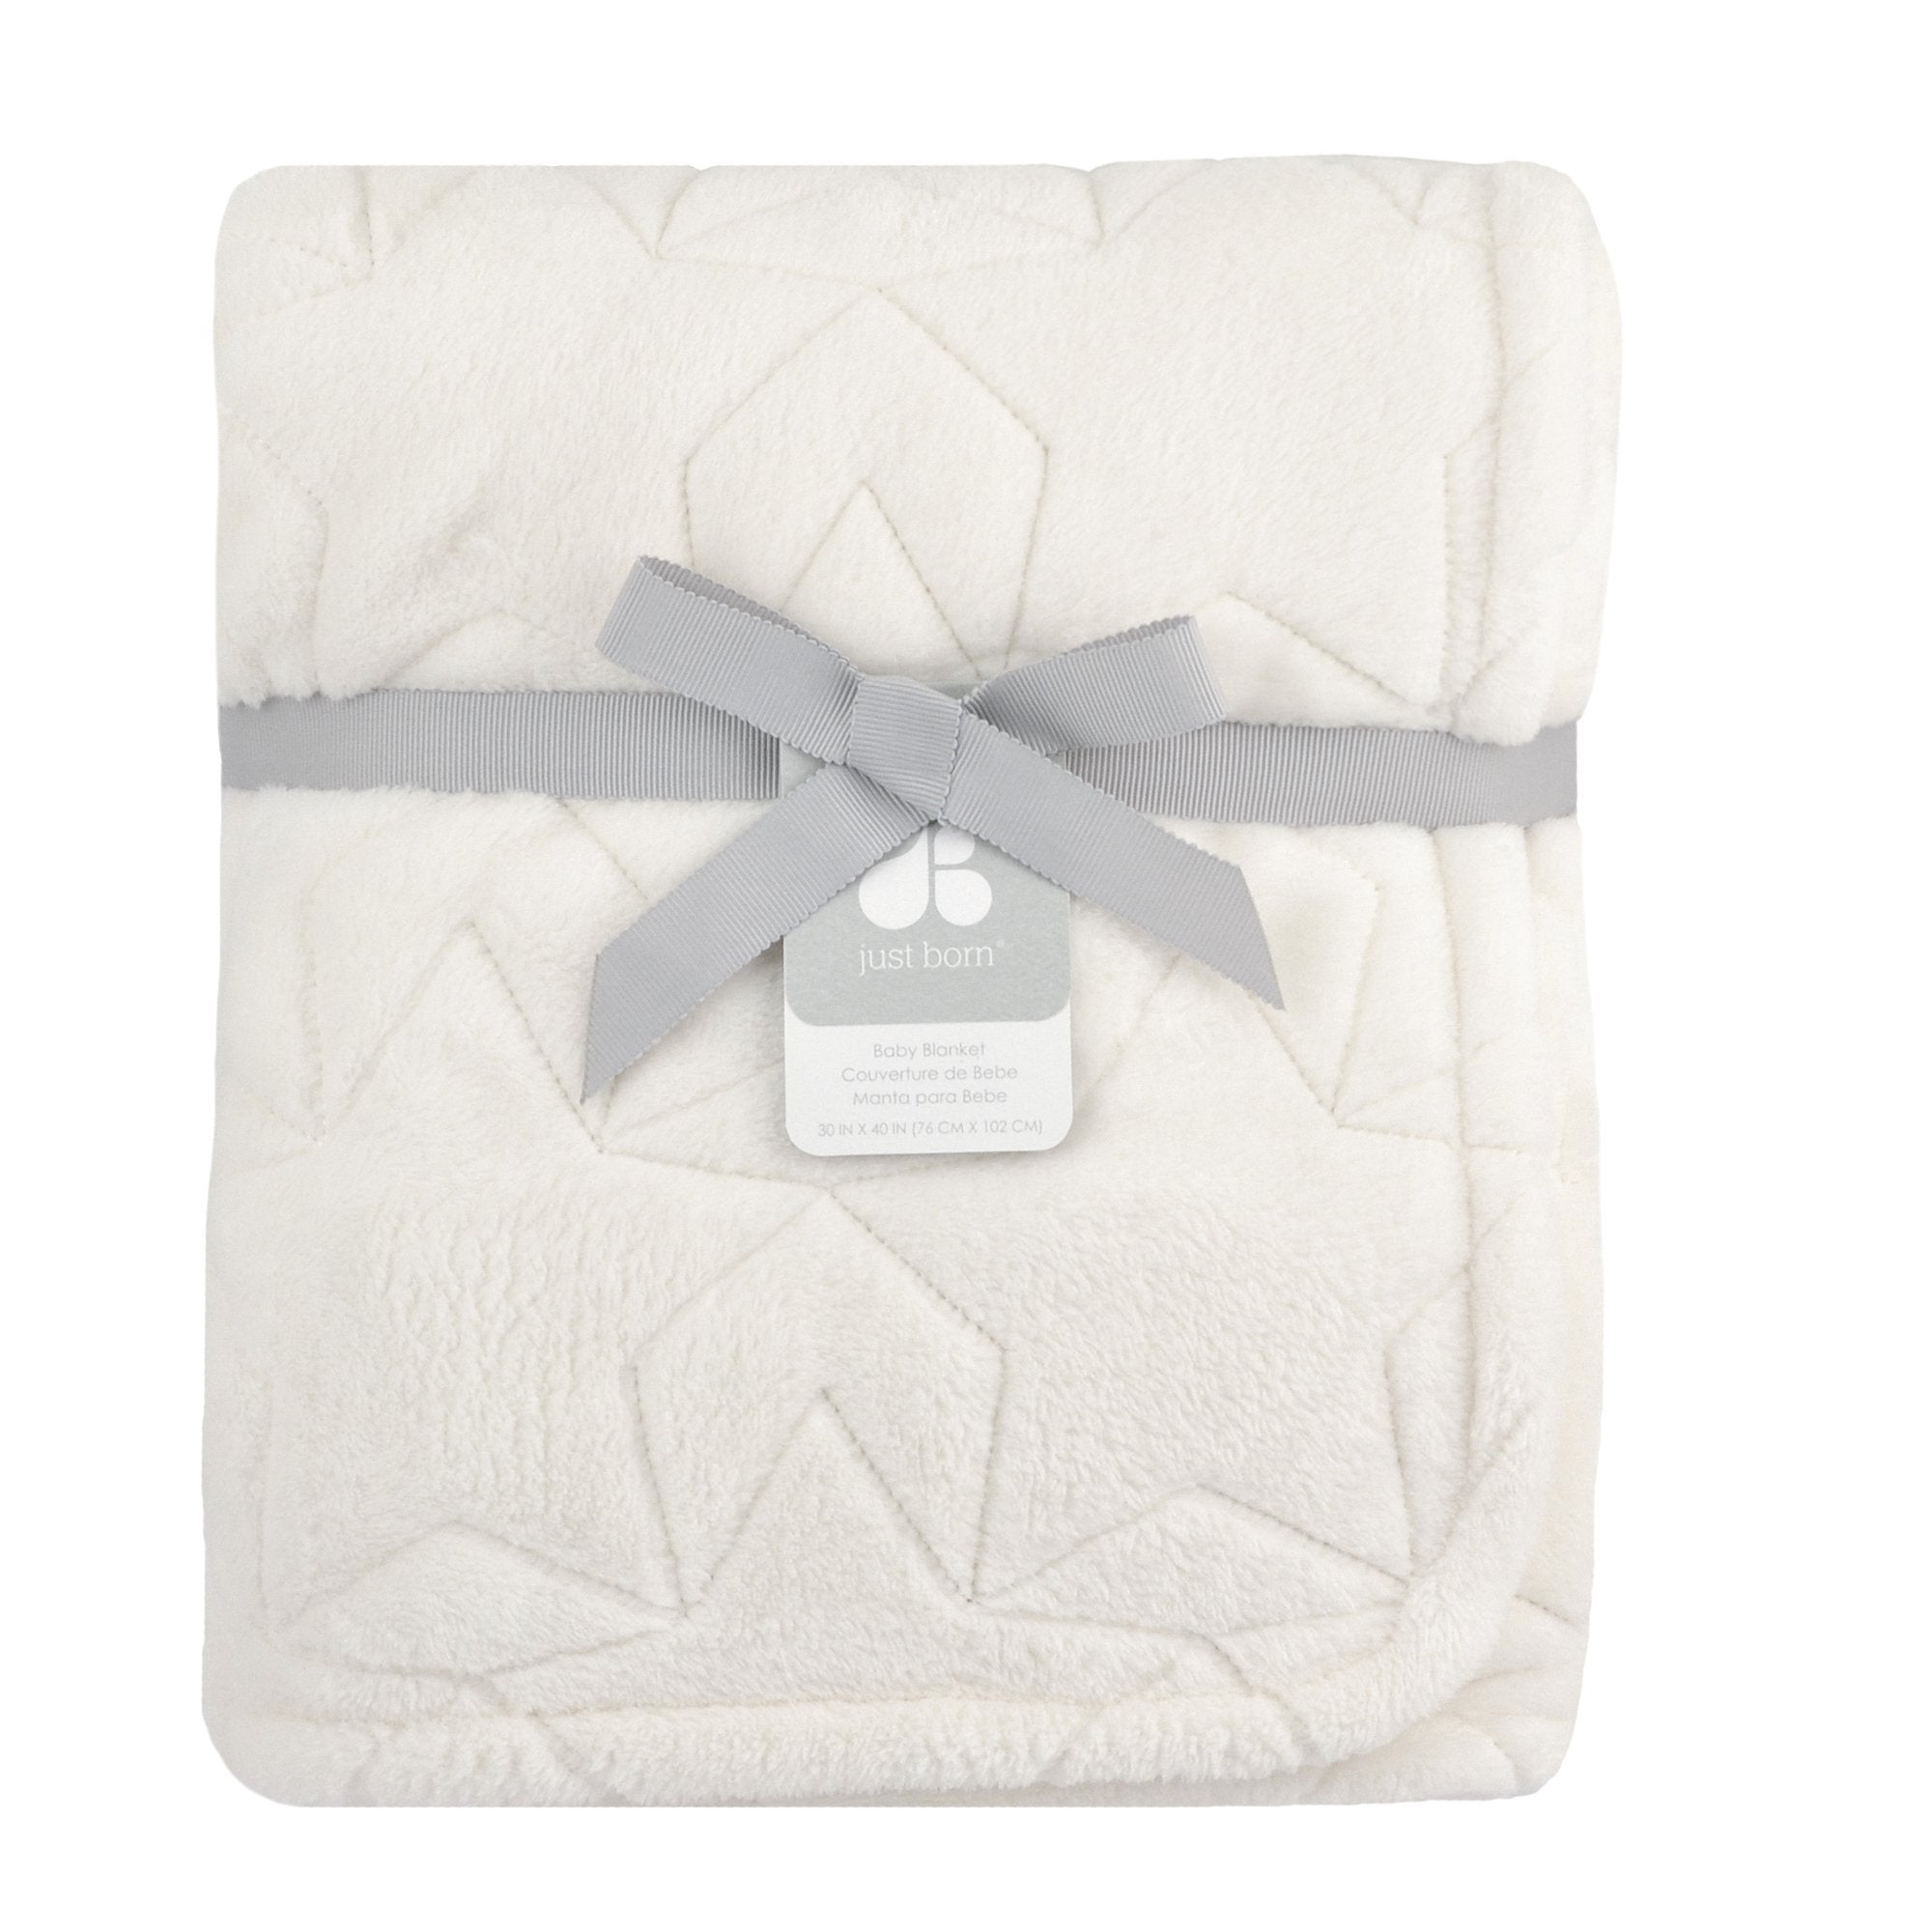 Just Born Star Luxury Blanket in Ivory-Gerber Childrenswear Wholesale